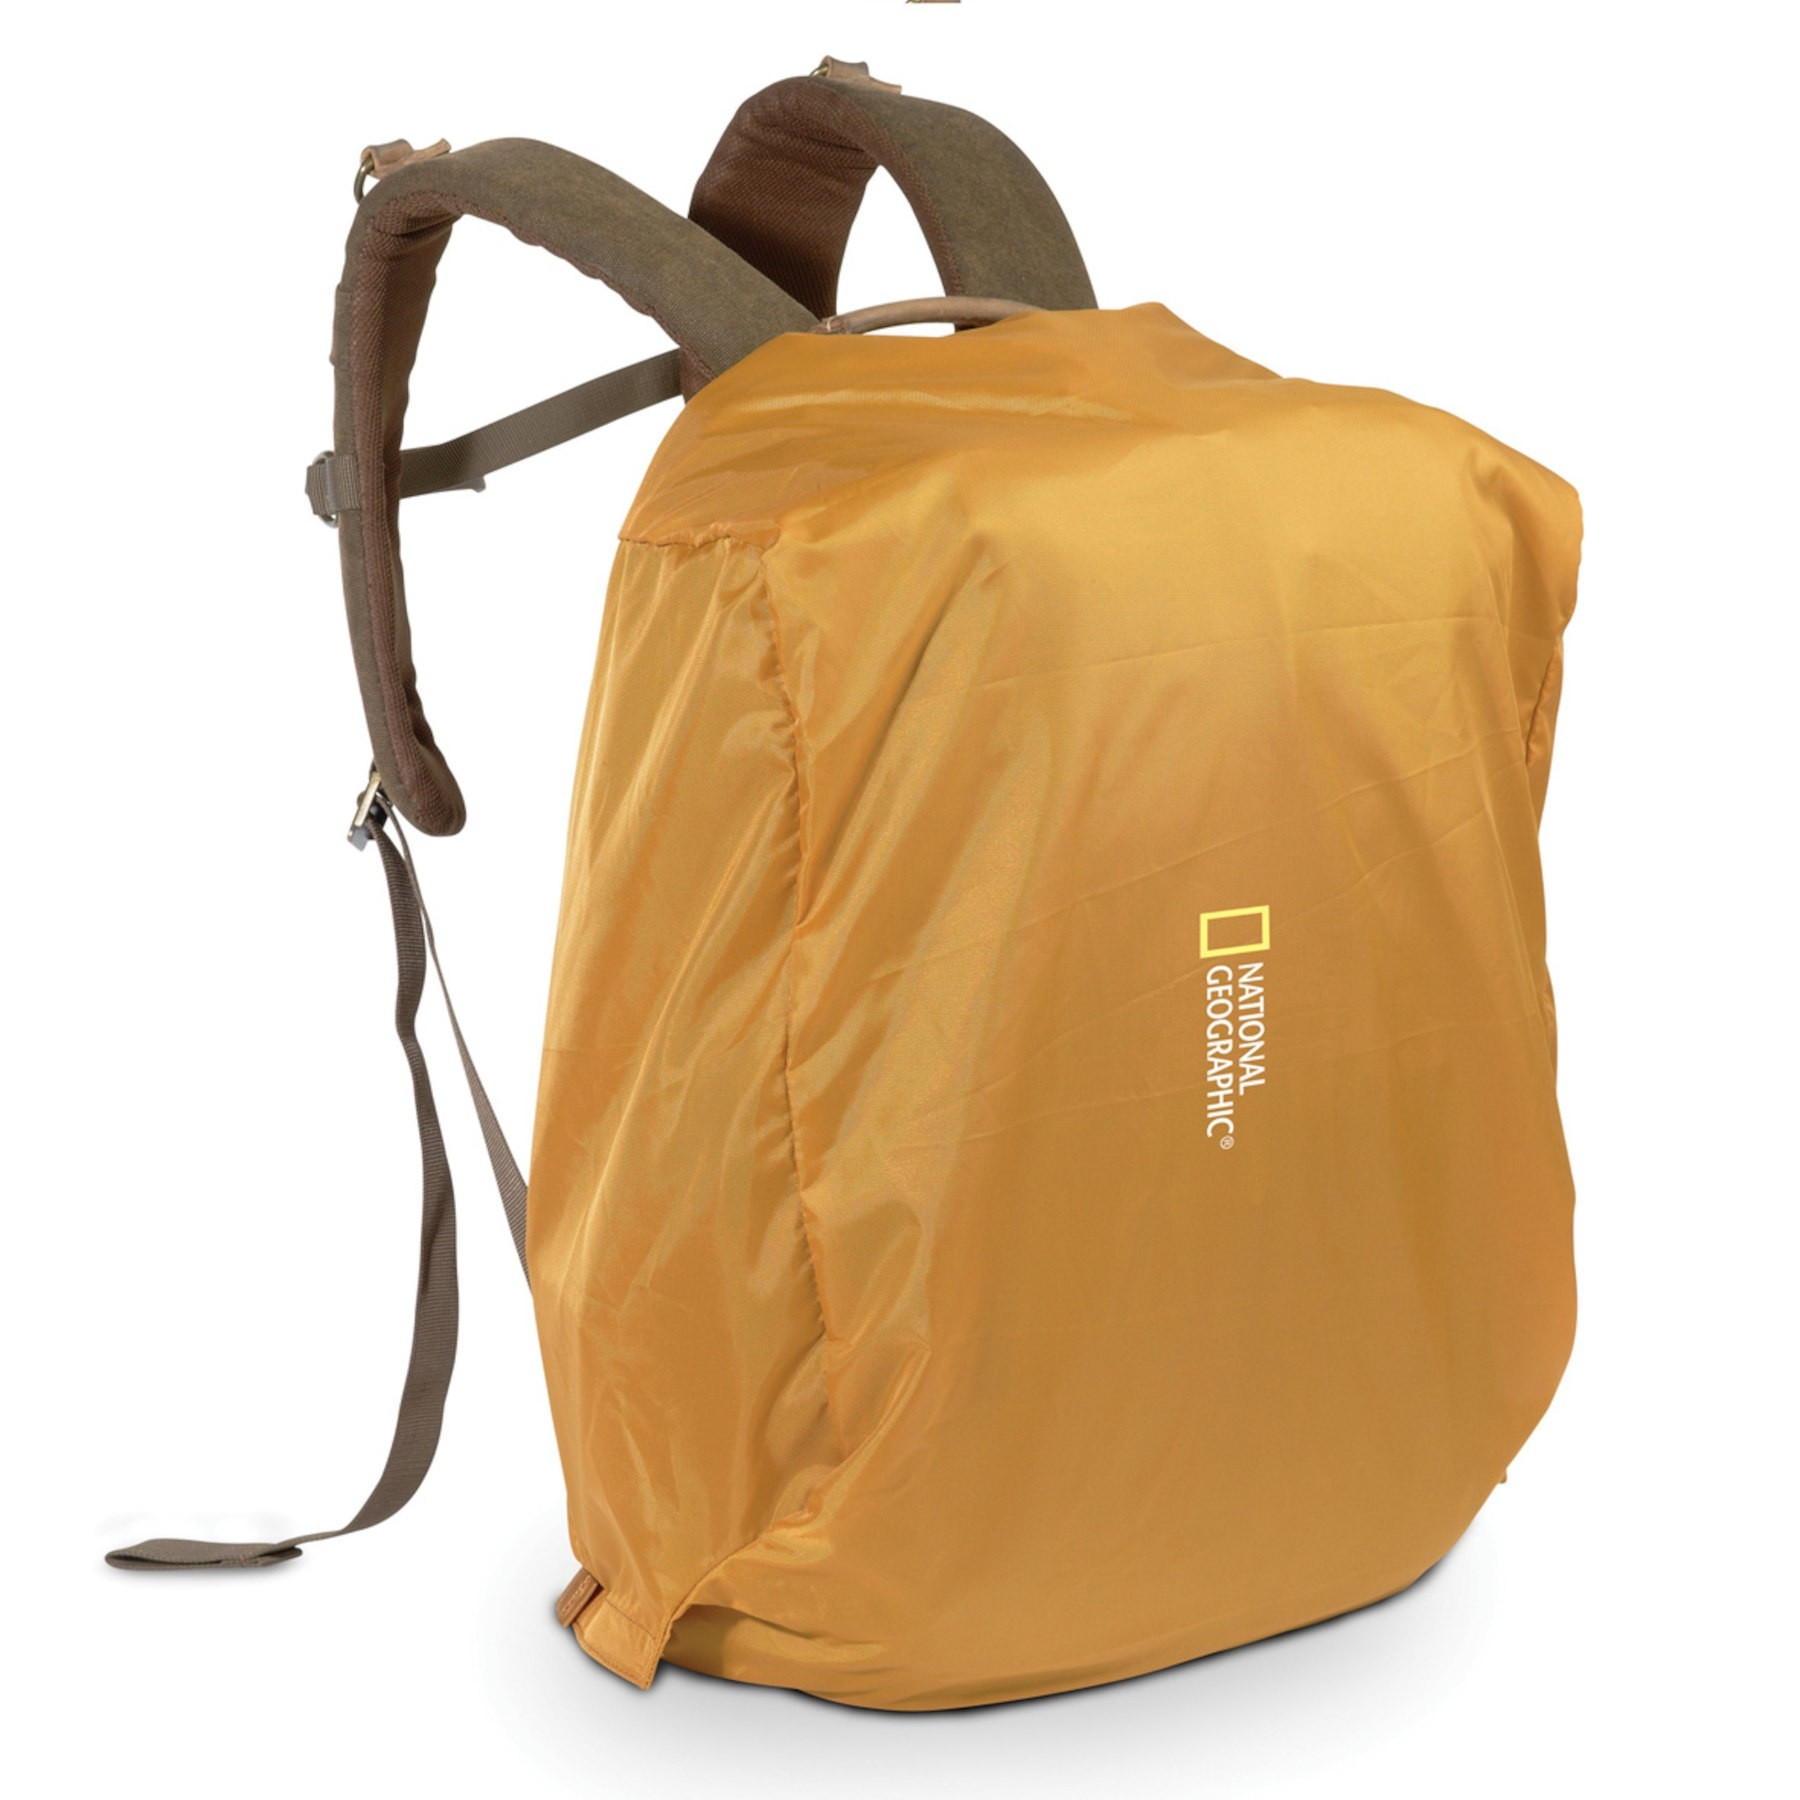 IMPERMEABLE P/MOCHILAS CHICAS Y MEDIANAS AFRICA (NG A2560RC)  719821314868